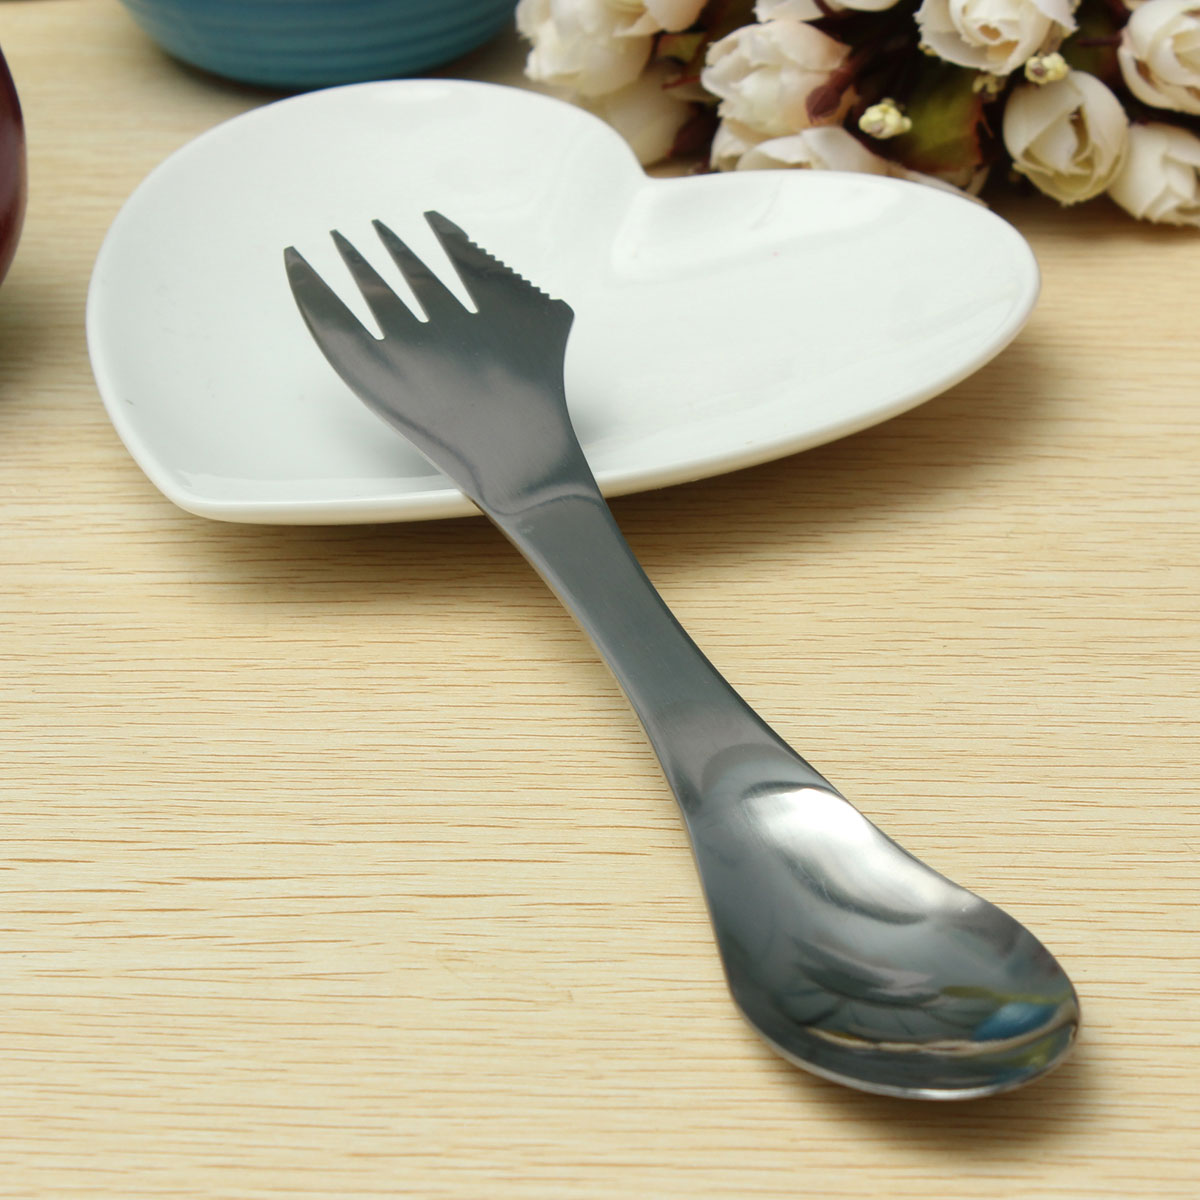 Portable 3in1 Stainless Steel Spork Spoon Knife Fork Cutlery Utensil ...